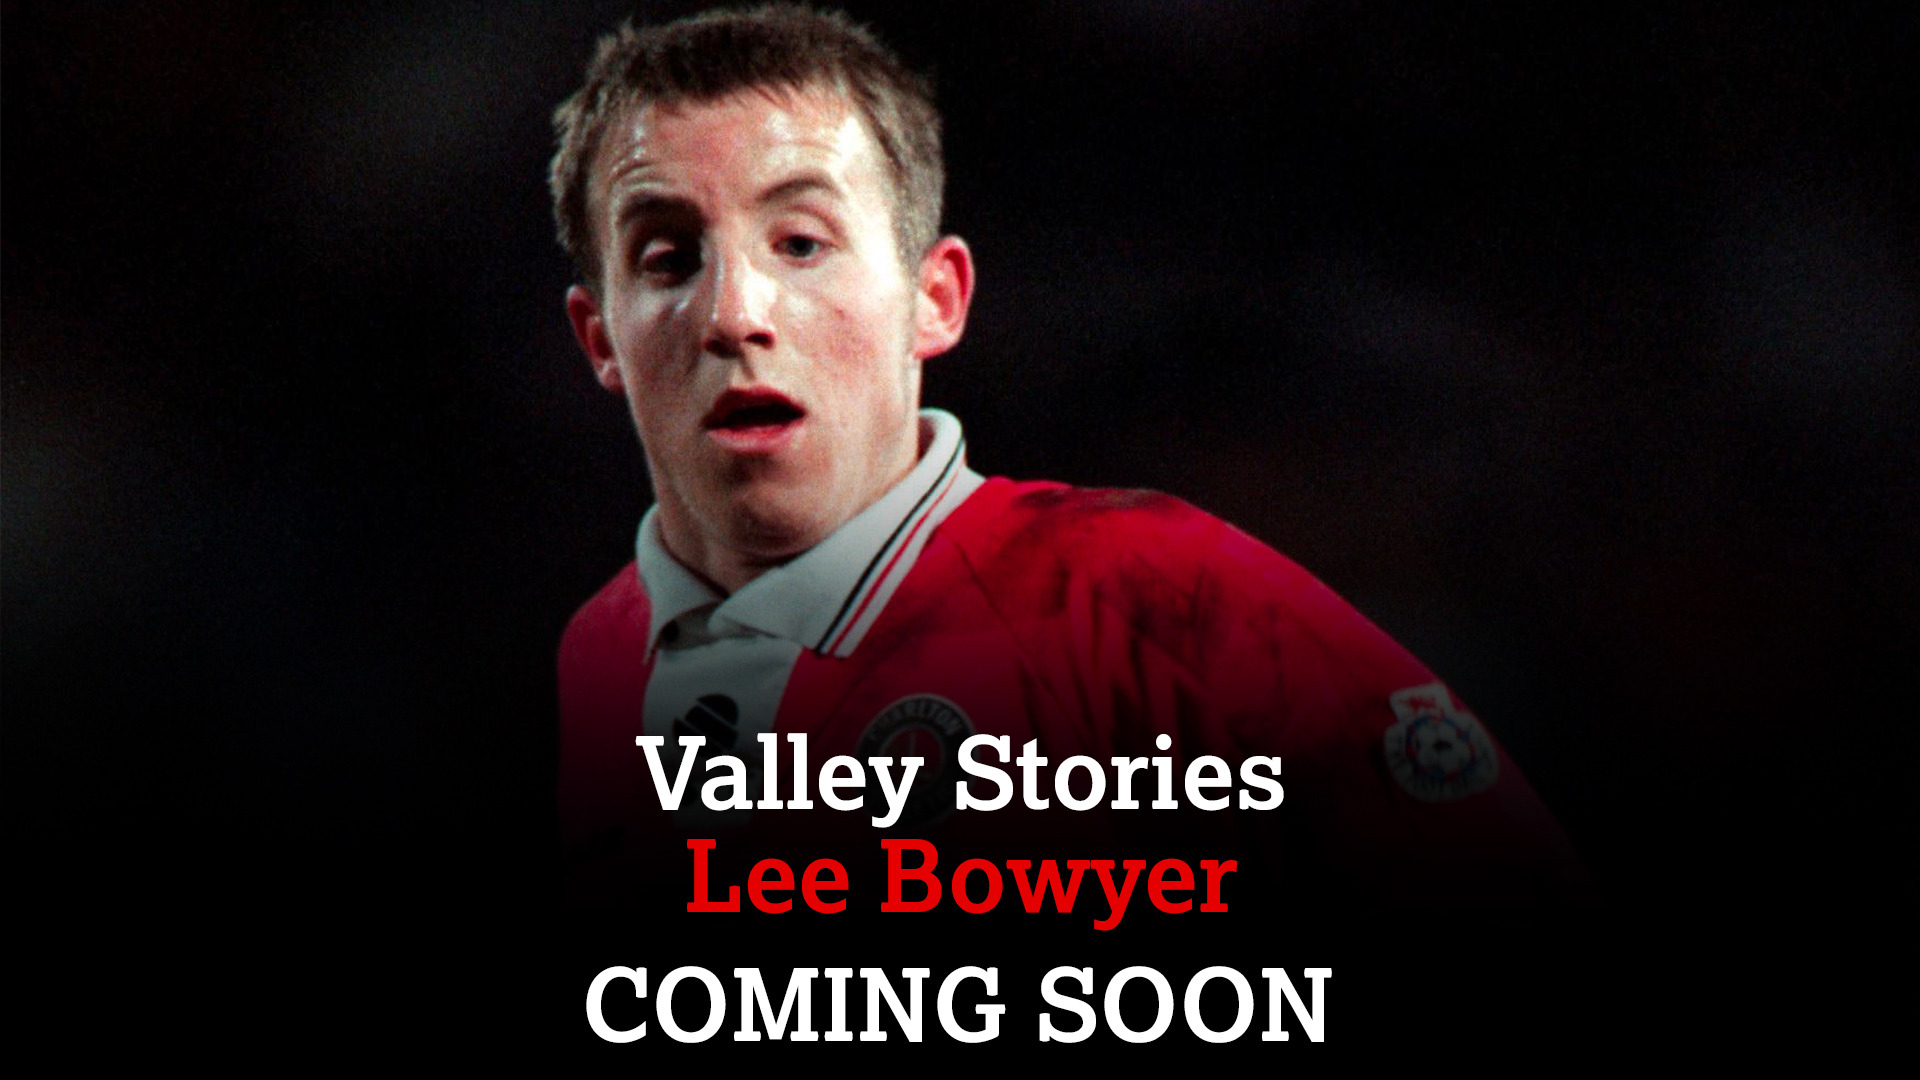 COMING SOON | Lee Bowyer Valley Stories